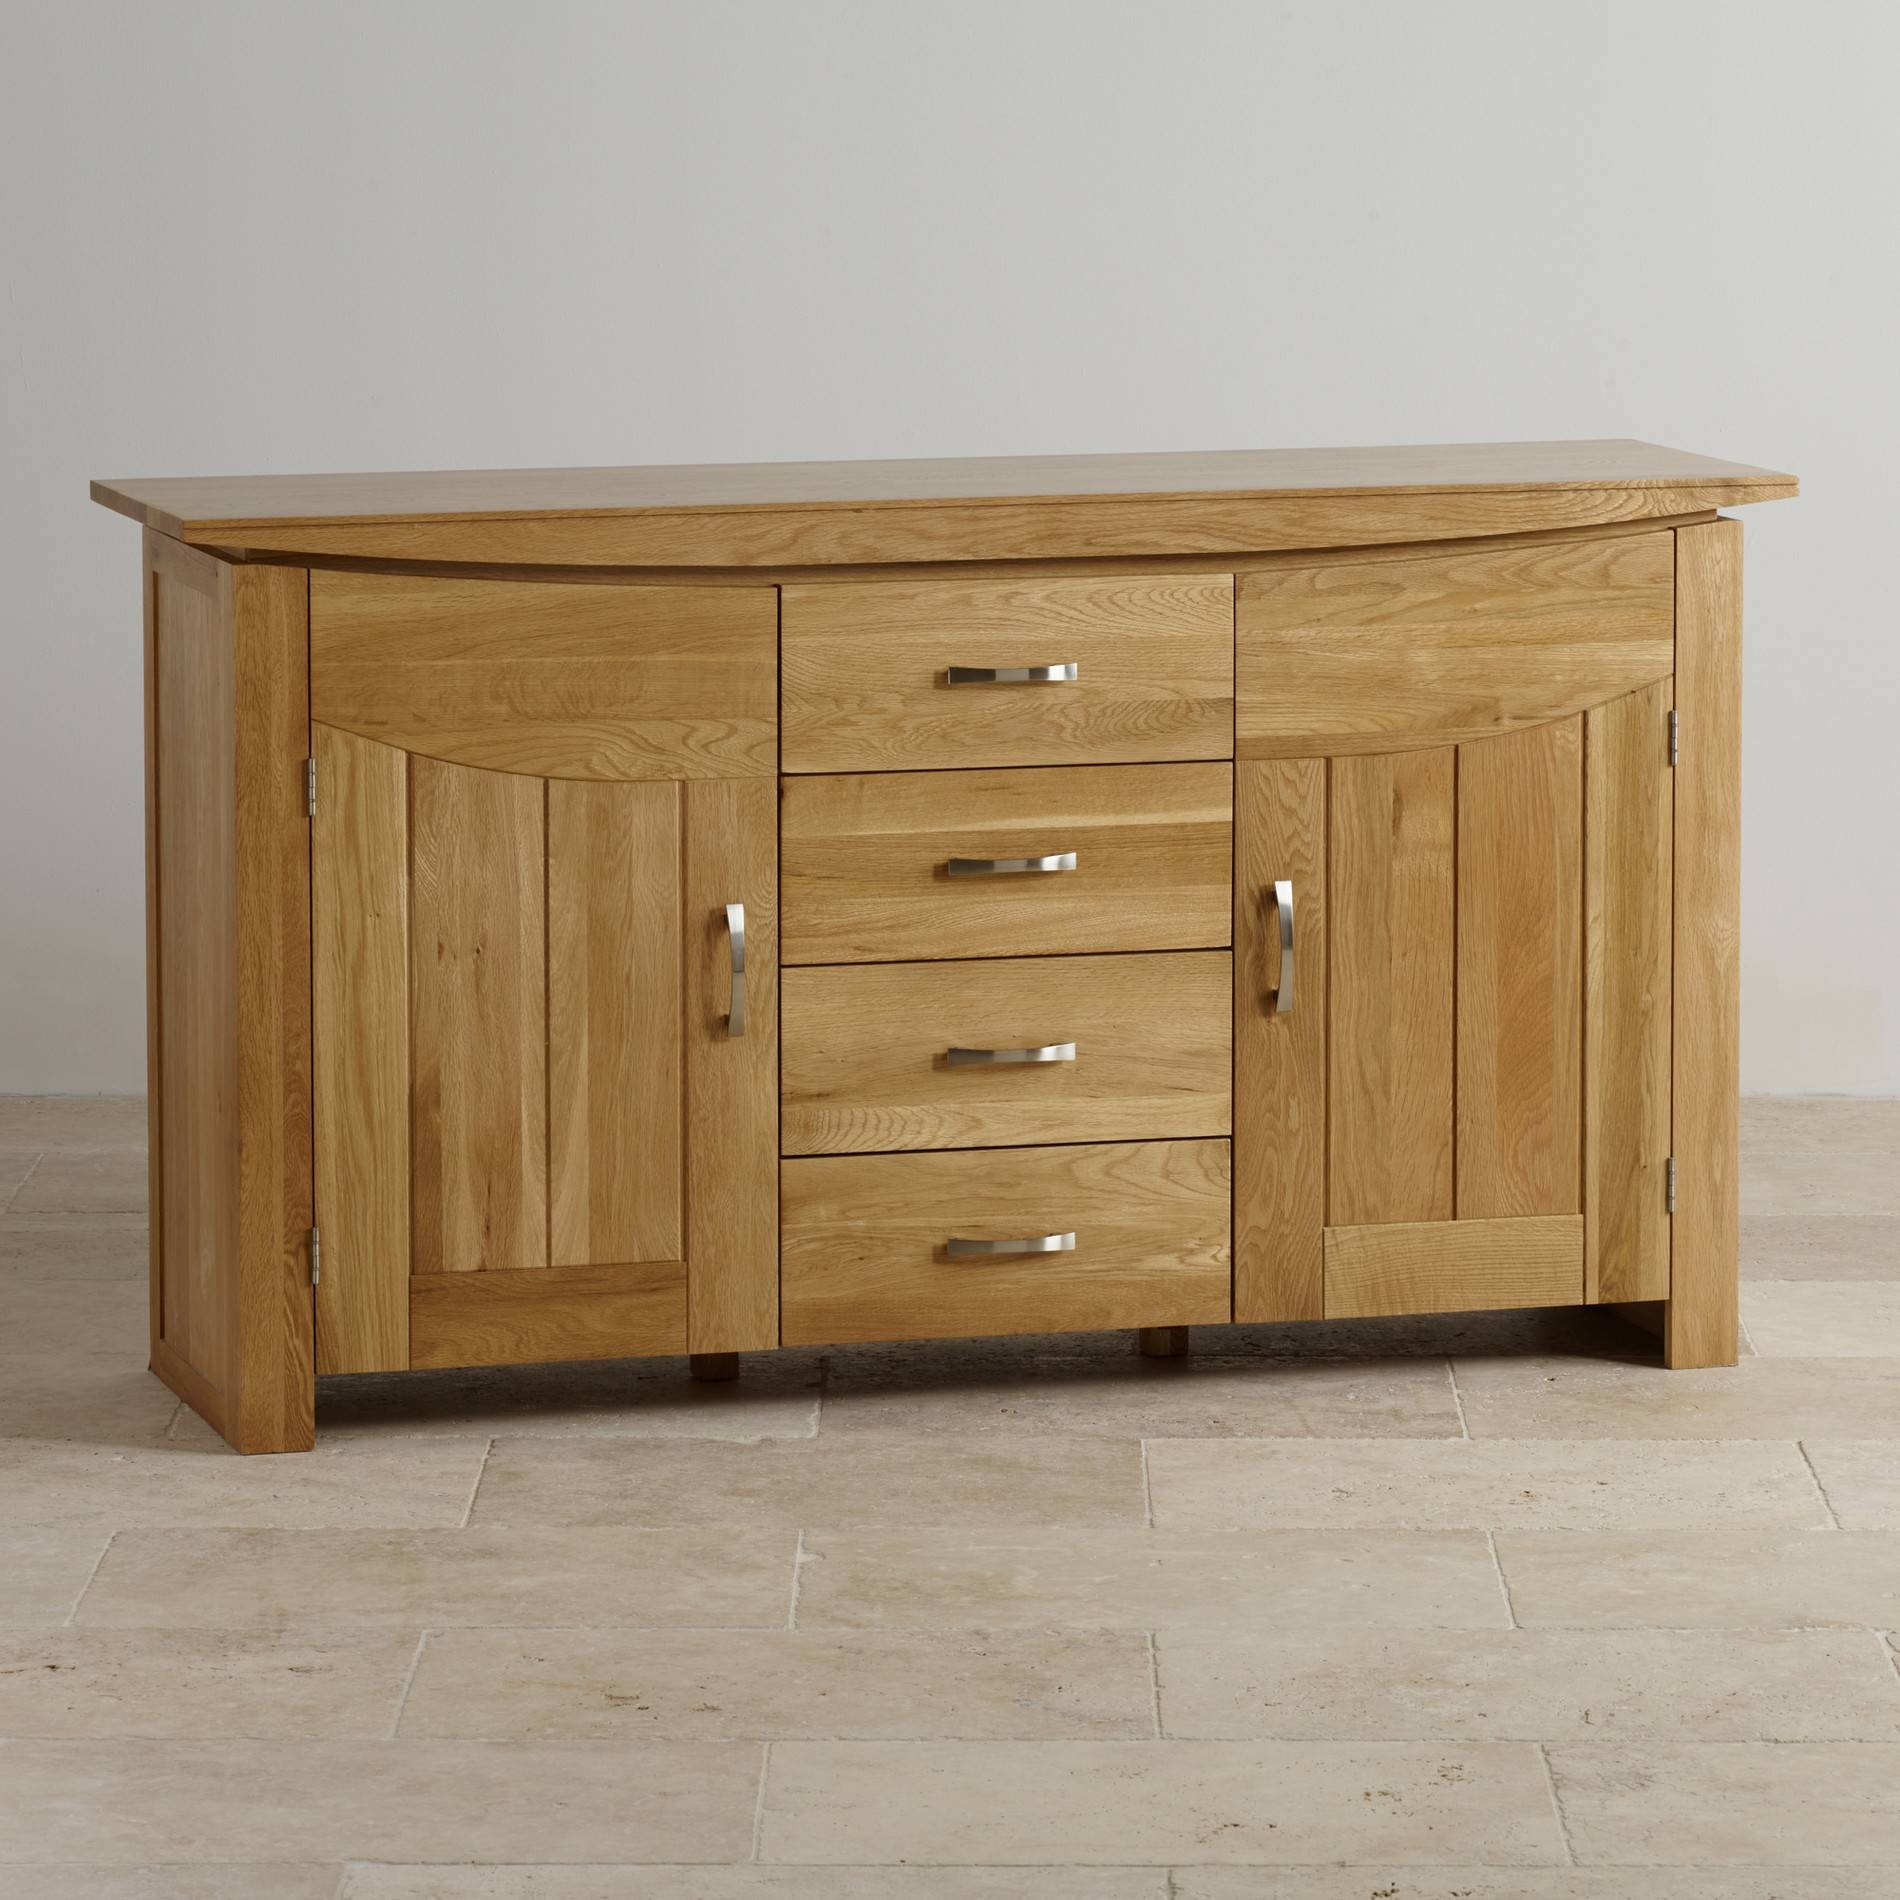 Sideboards | 100% Solid Hardwood | Oak Furniture Land With Regard To Ready Assembled Sideboards (#19 of 20)